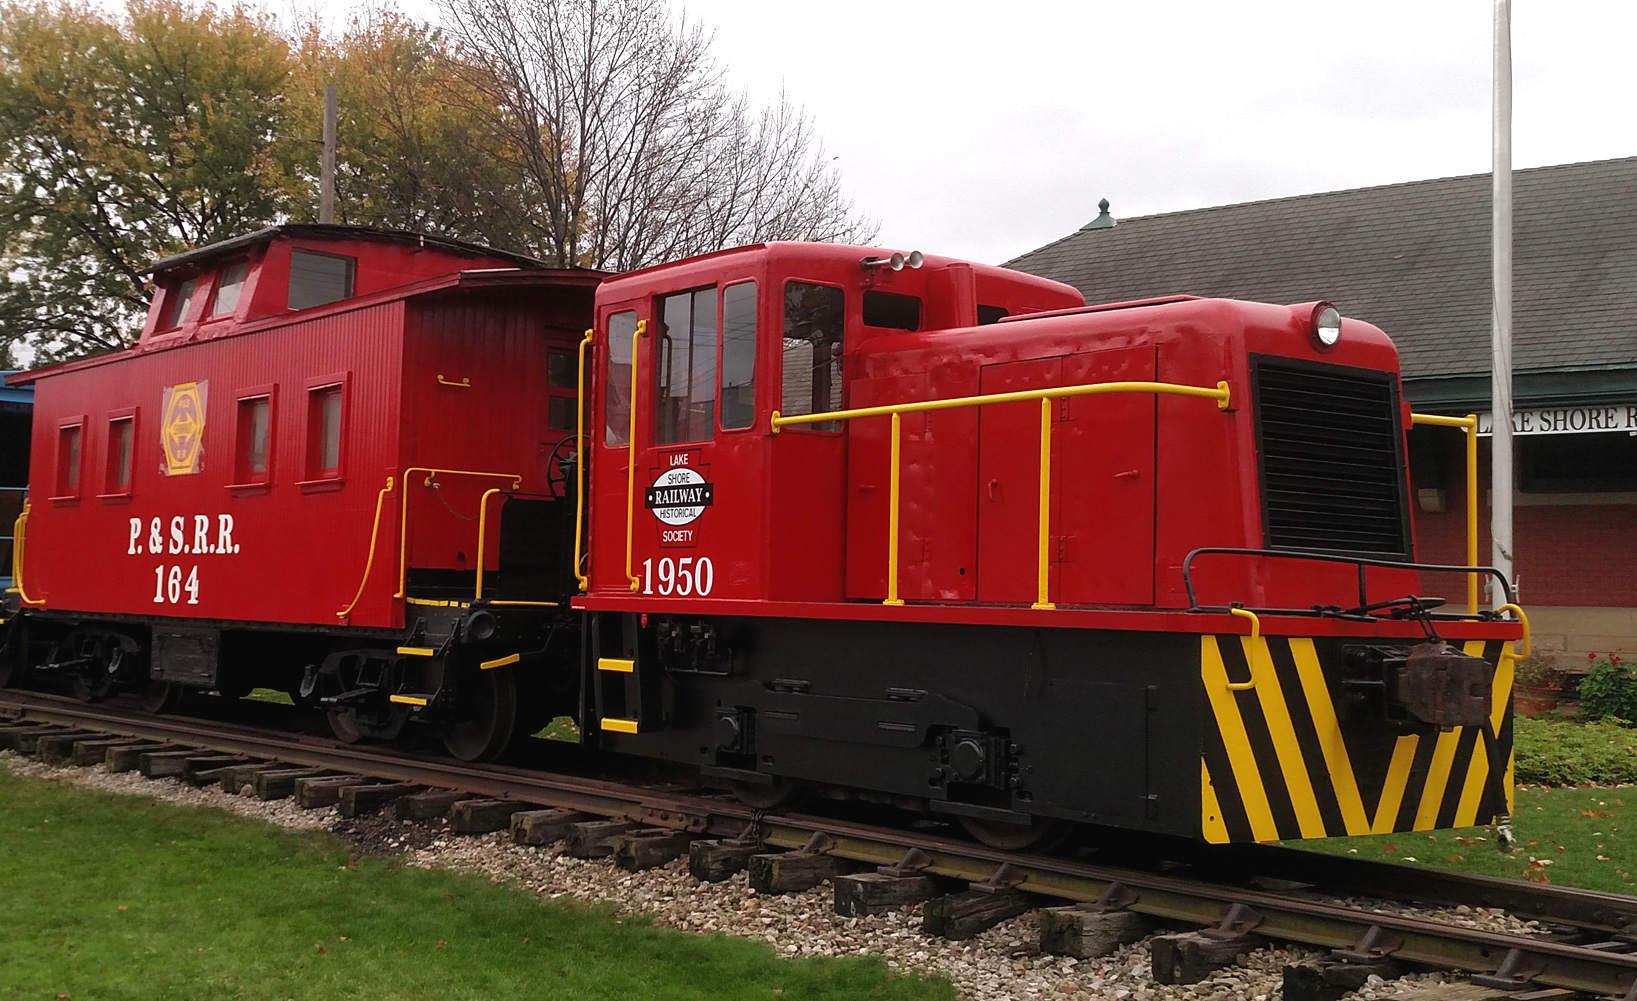 Lake Shore Railway Museum will open on a new winter hours schedule beginning on January 7th